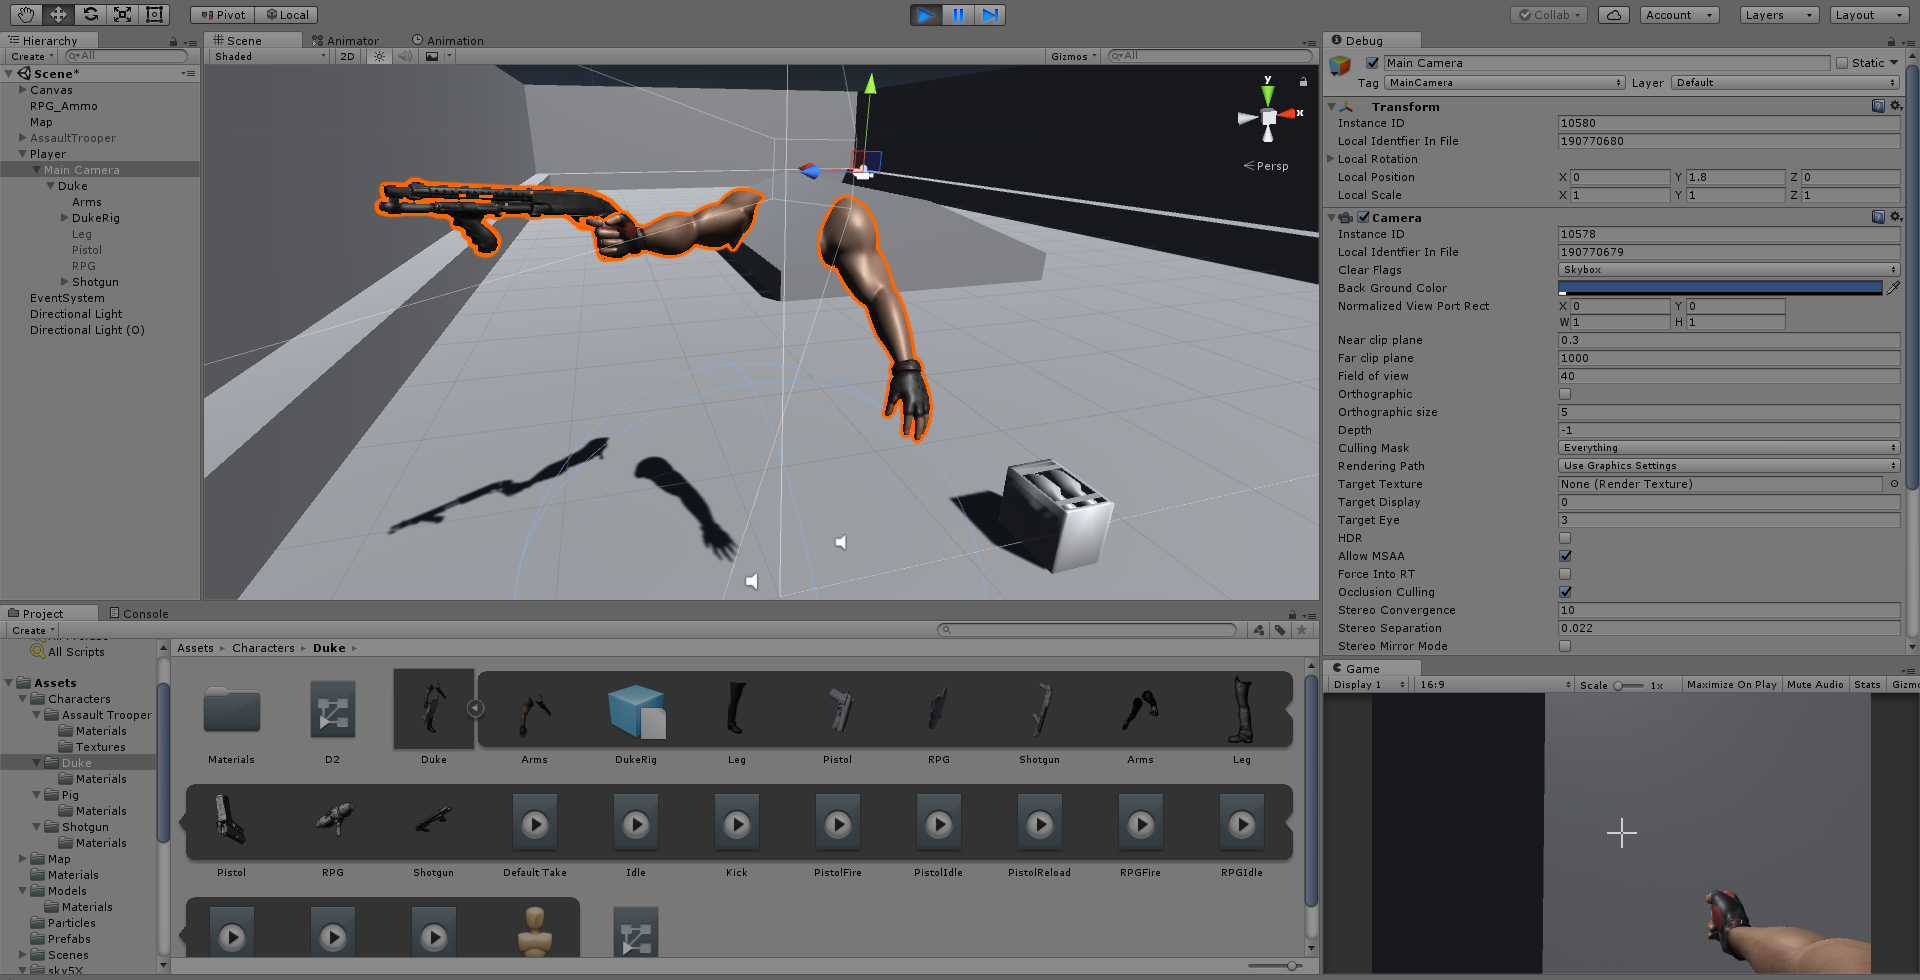 Camera not rendering some meshes in the hierarchy - Unity